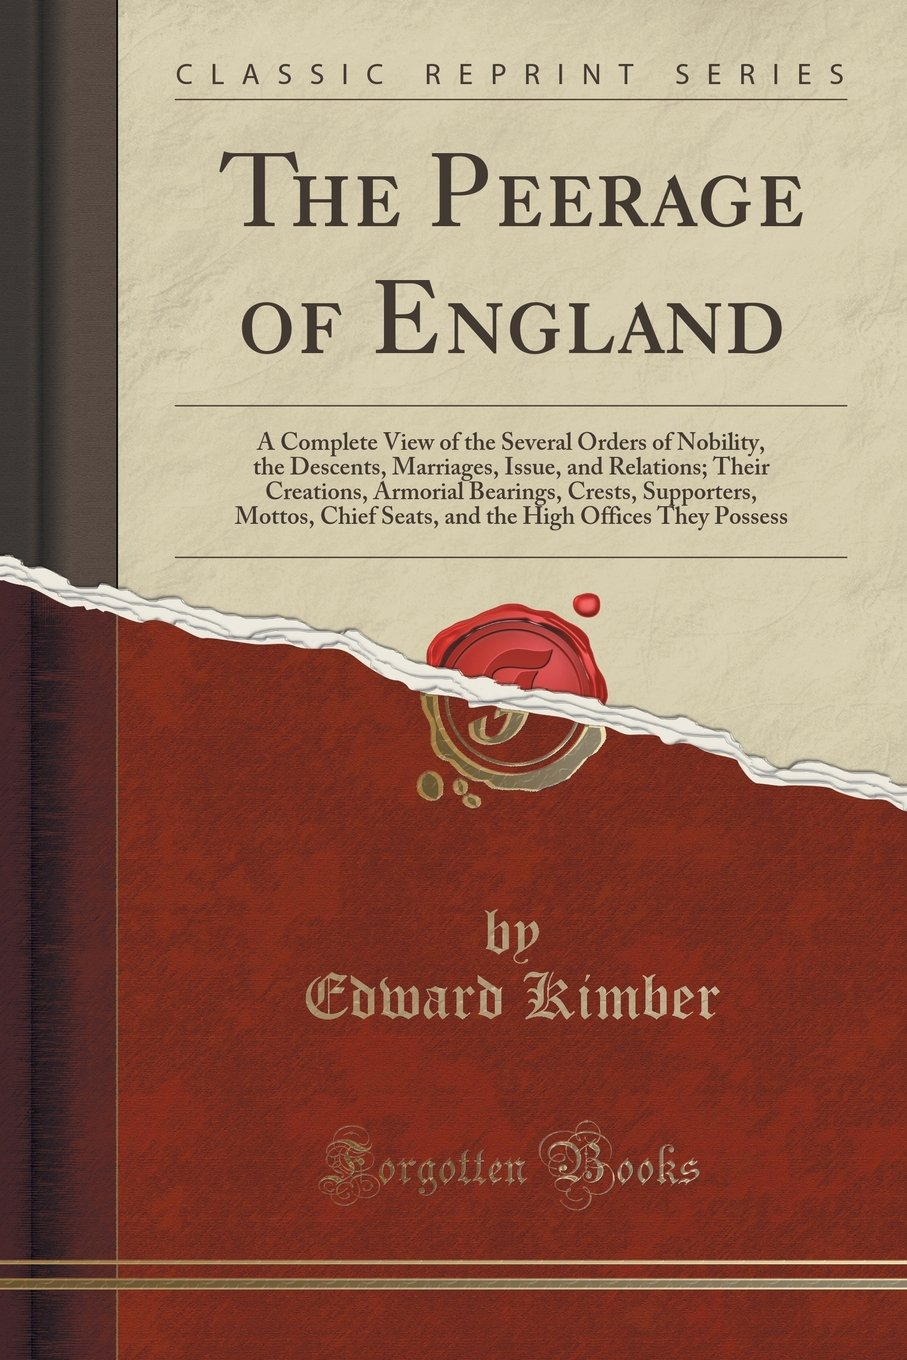 The Peerage of England: A Complete View of the Several Orders of Nobility, the Descents, Marriages, Issue, and Relations; Their Creations, Armorial ... High Offices They Possess (Classic Reprint) pdf epub